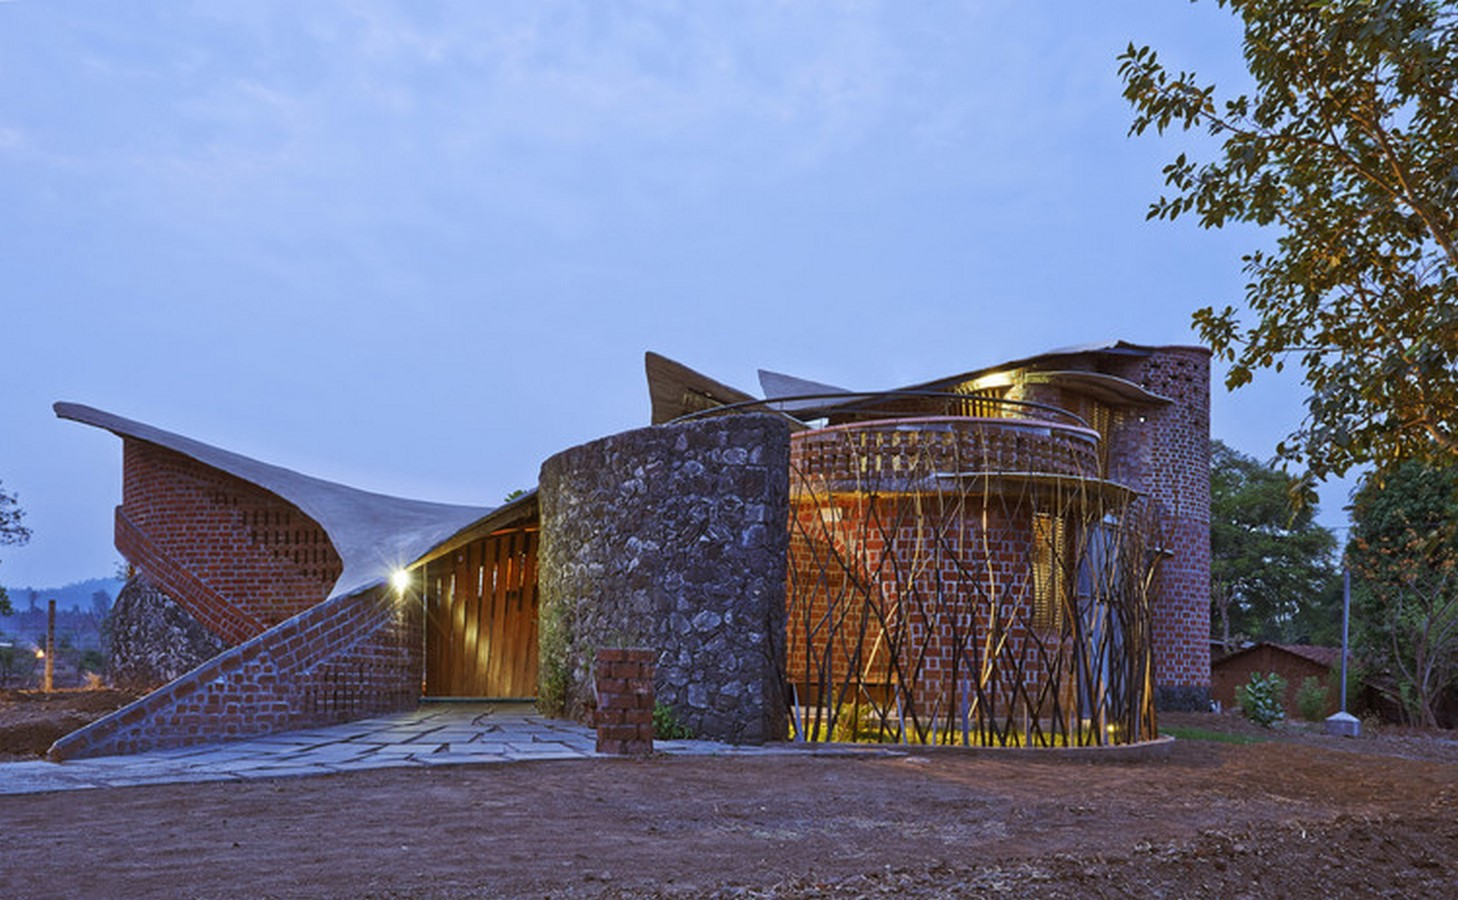 10 Examples of Contemporary Vernacular architecture - Sheet1